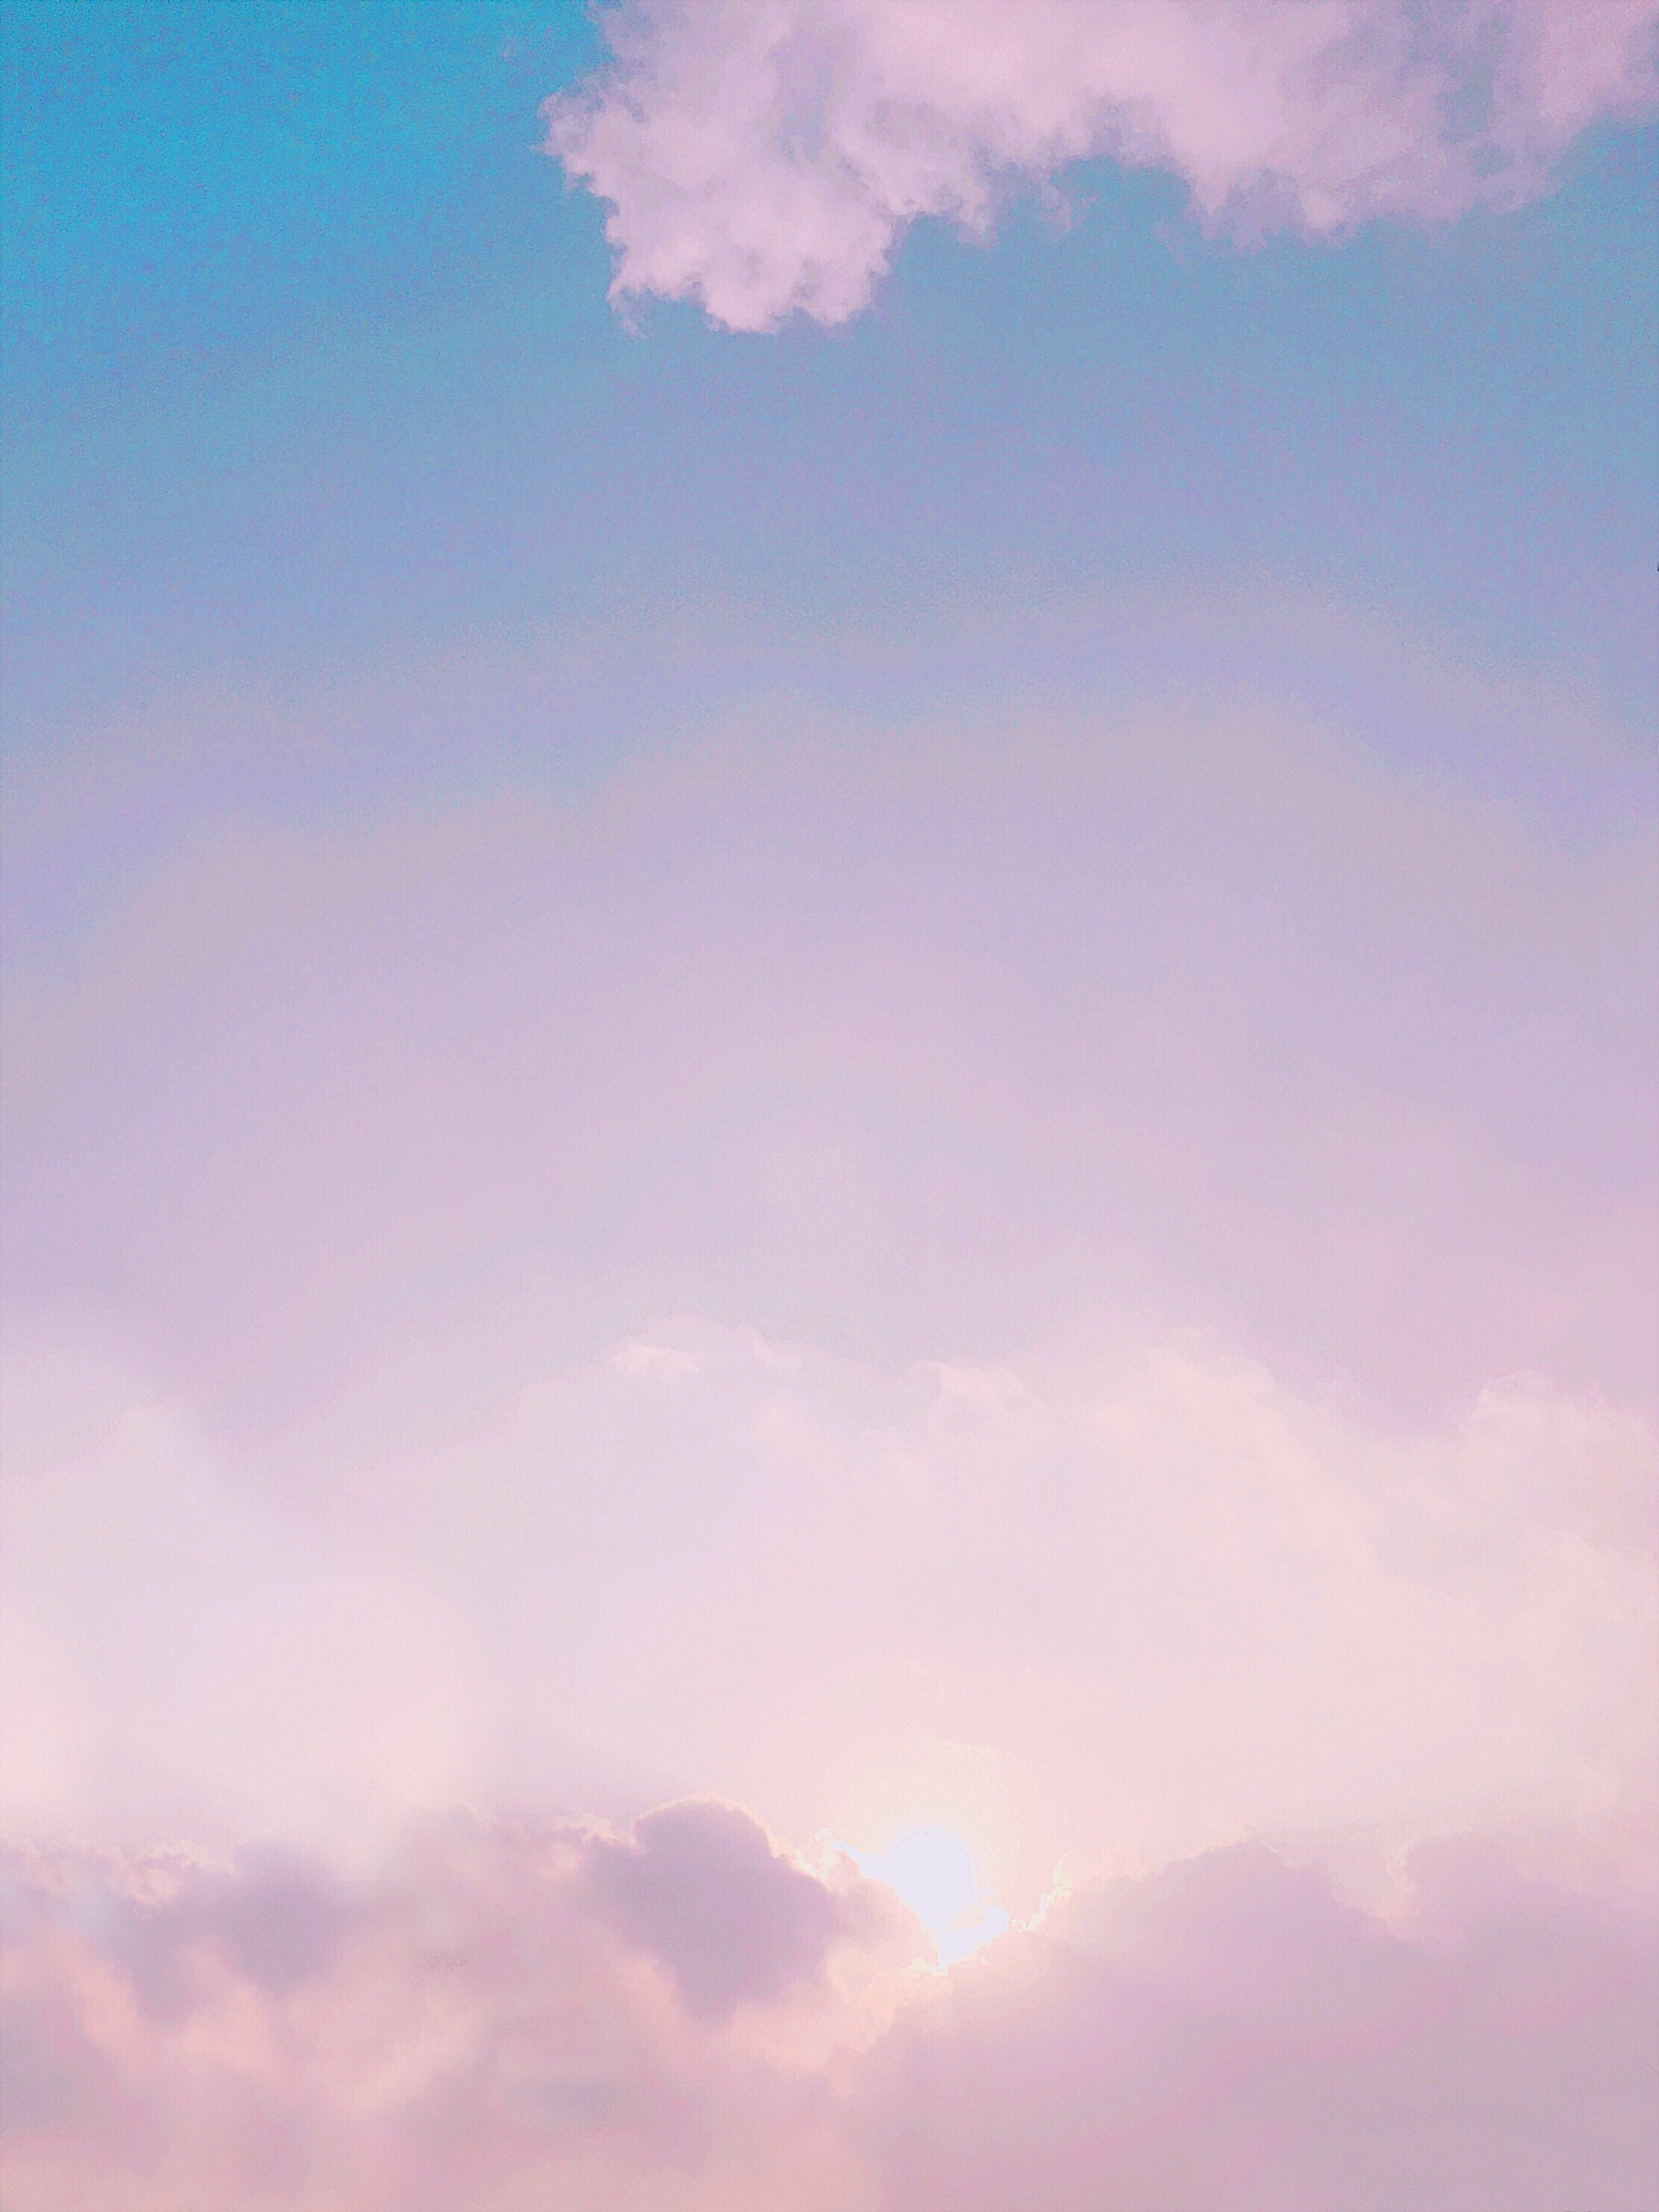 photo of pink and blue clouds